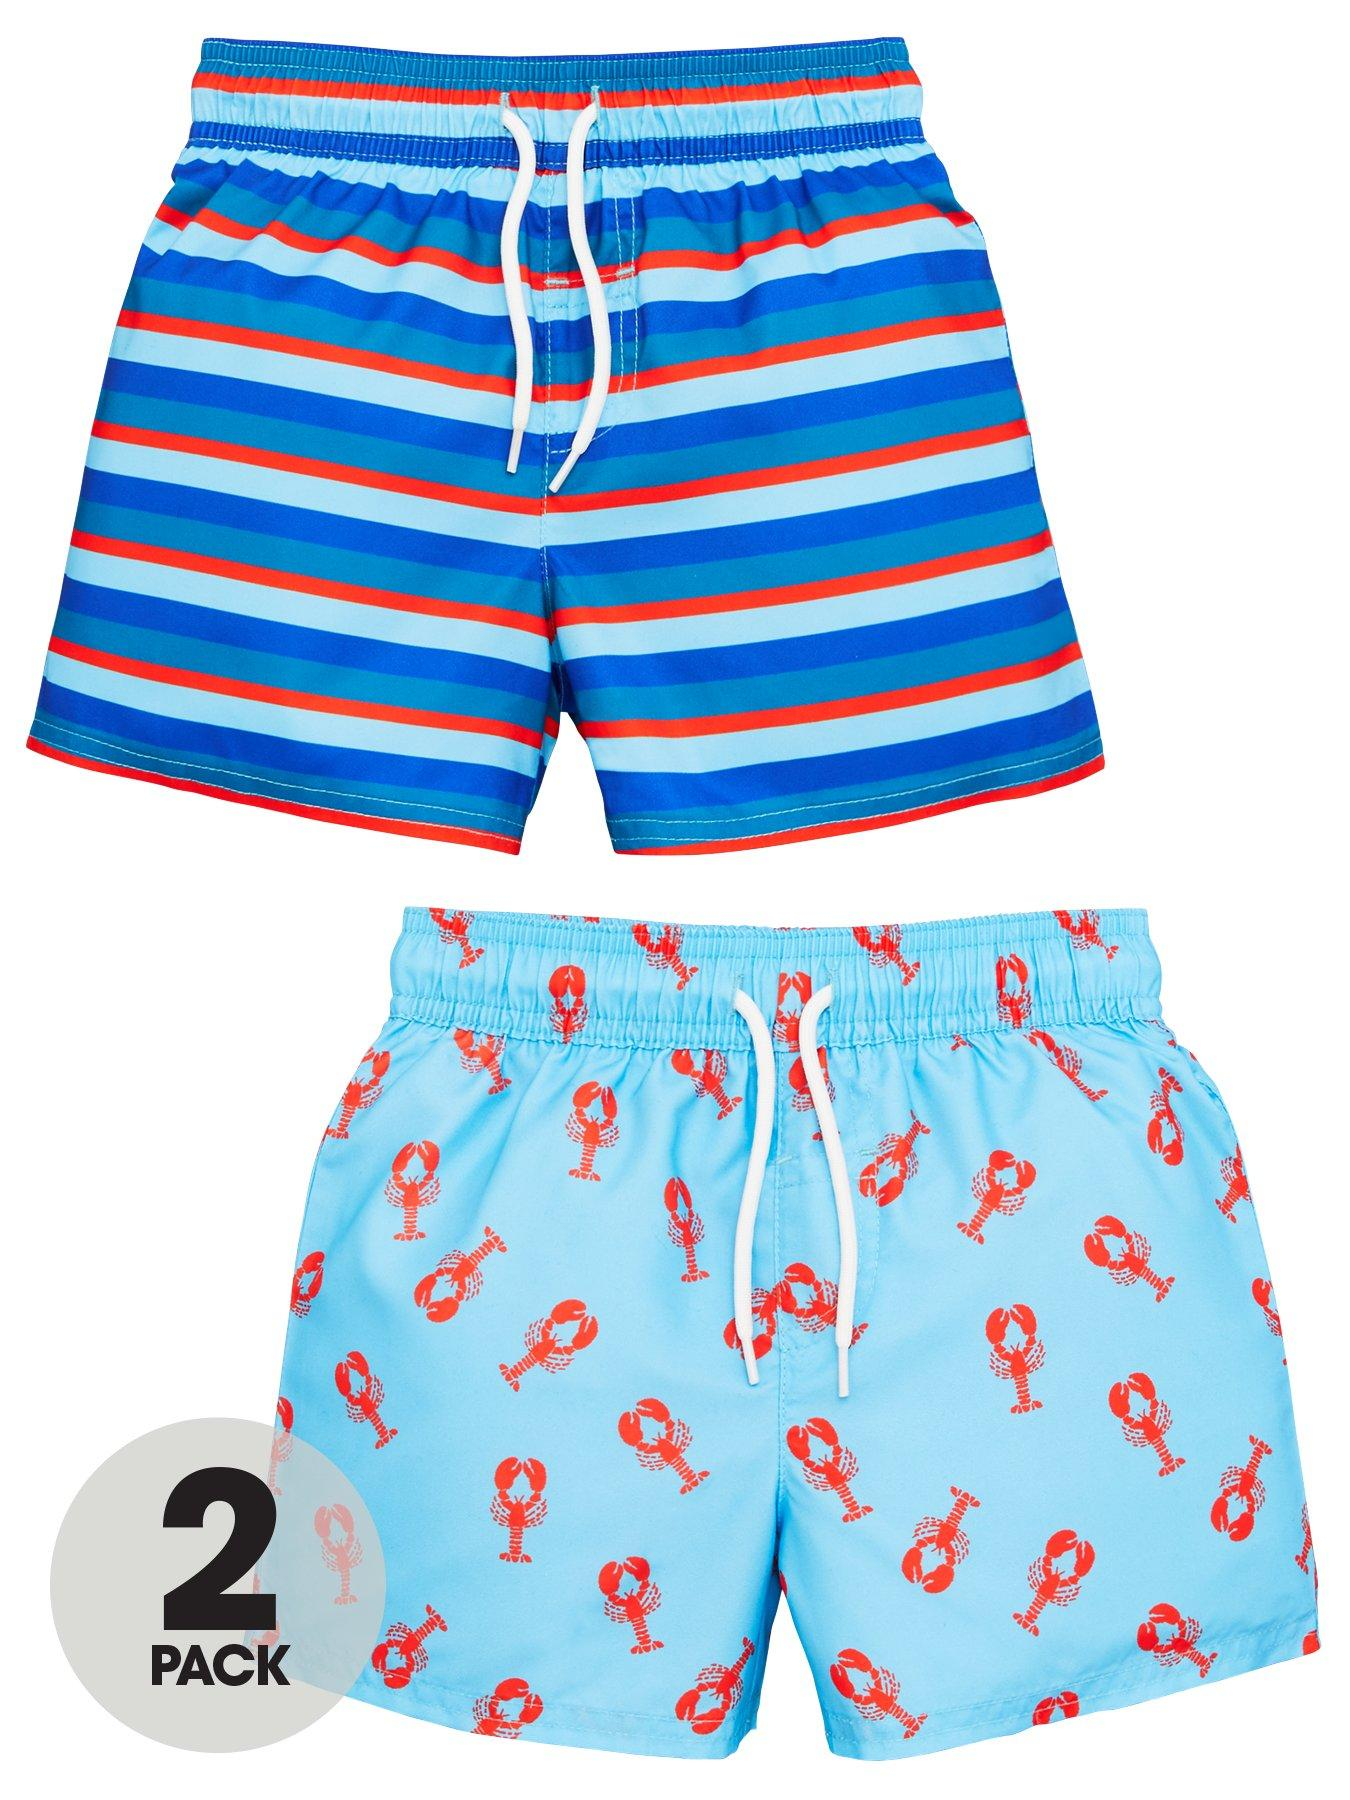 6-9 Months Baby Boys 2 Pack Responsibly Sourced Cotton Shorts Blue /& Orange